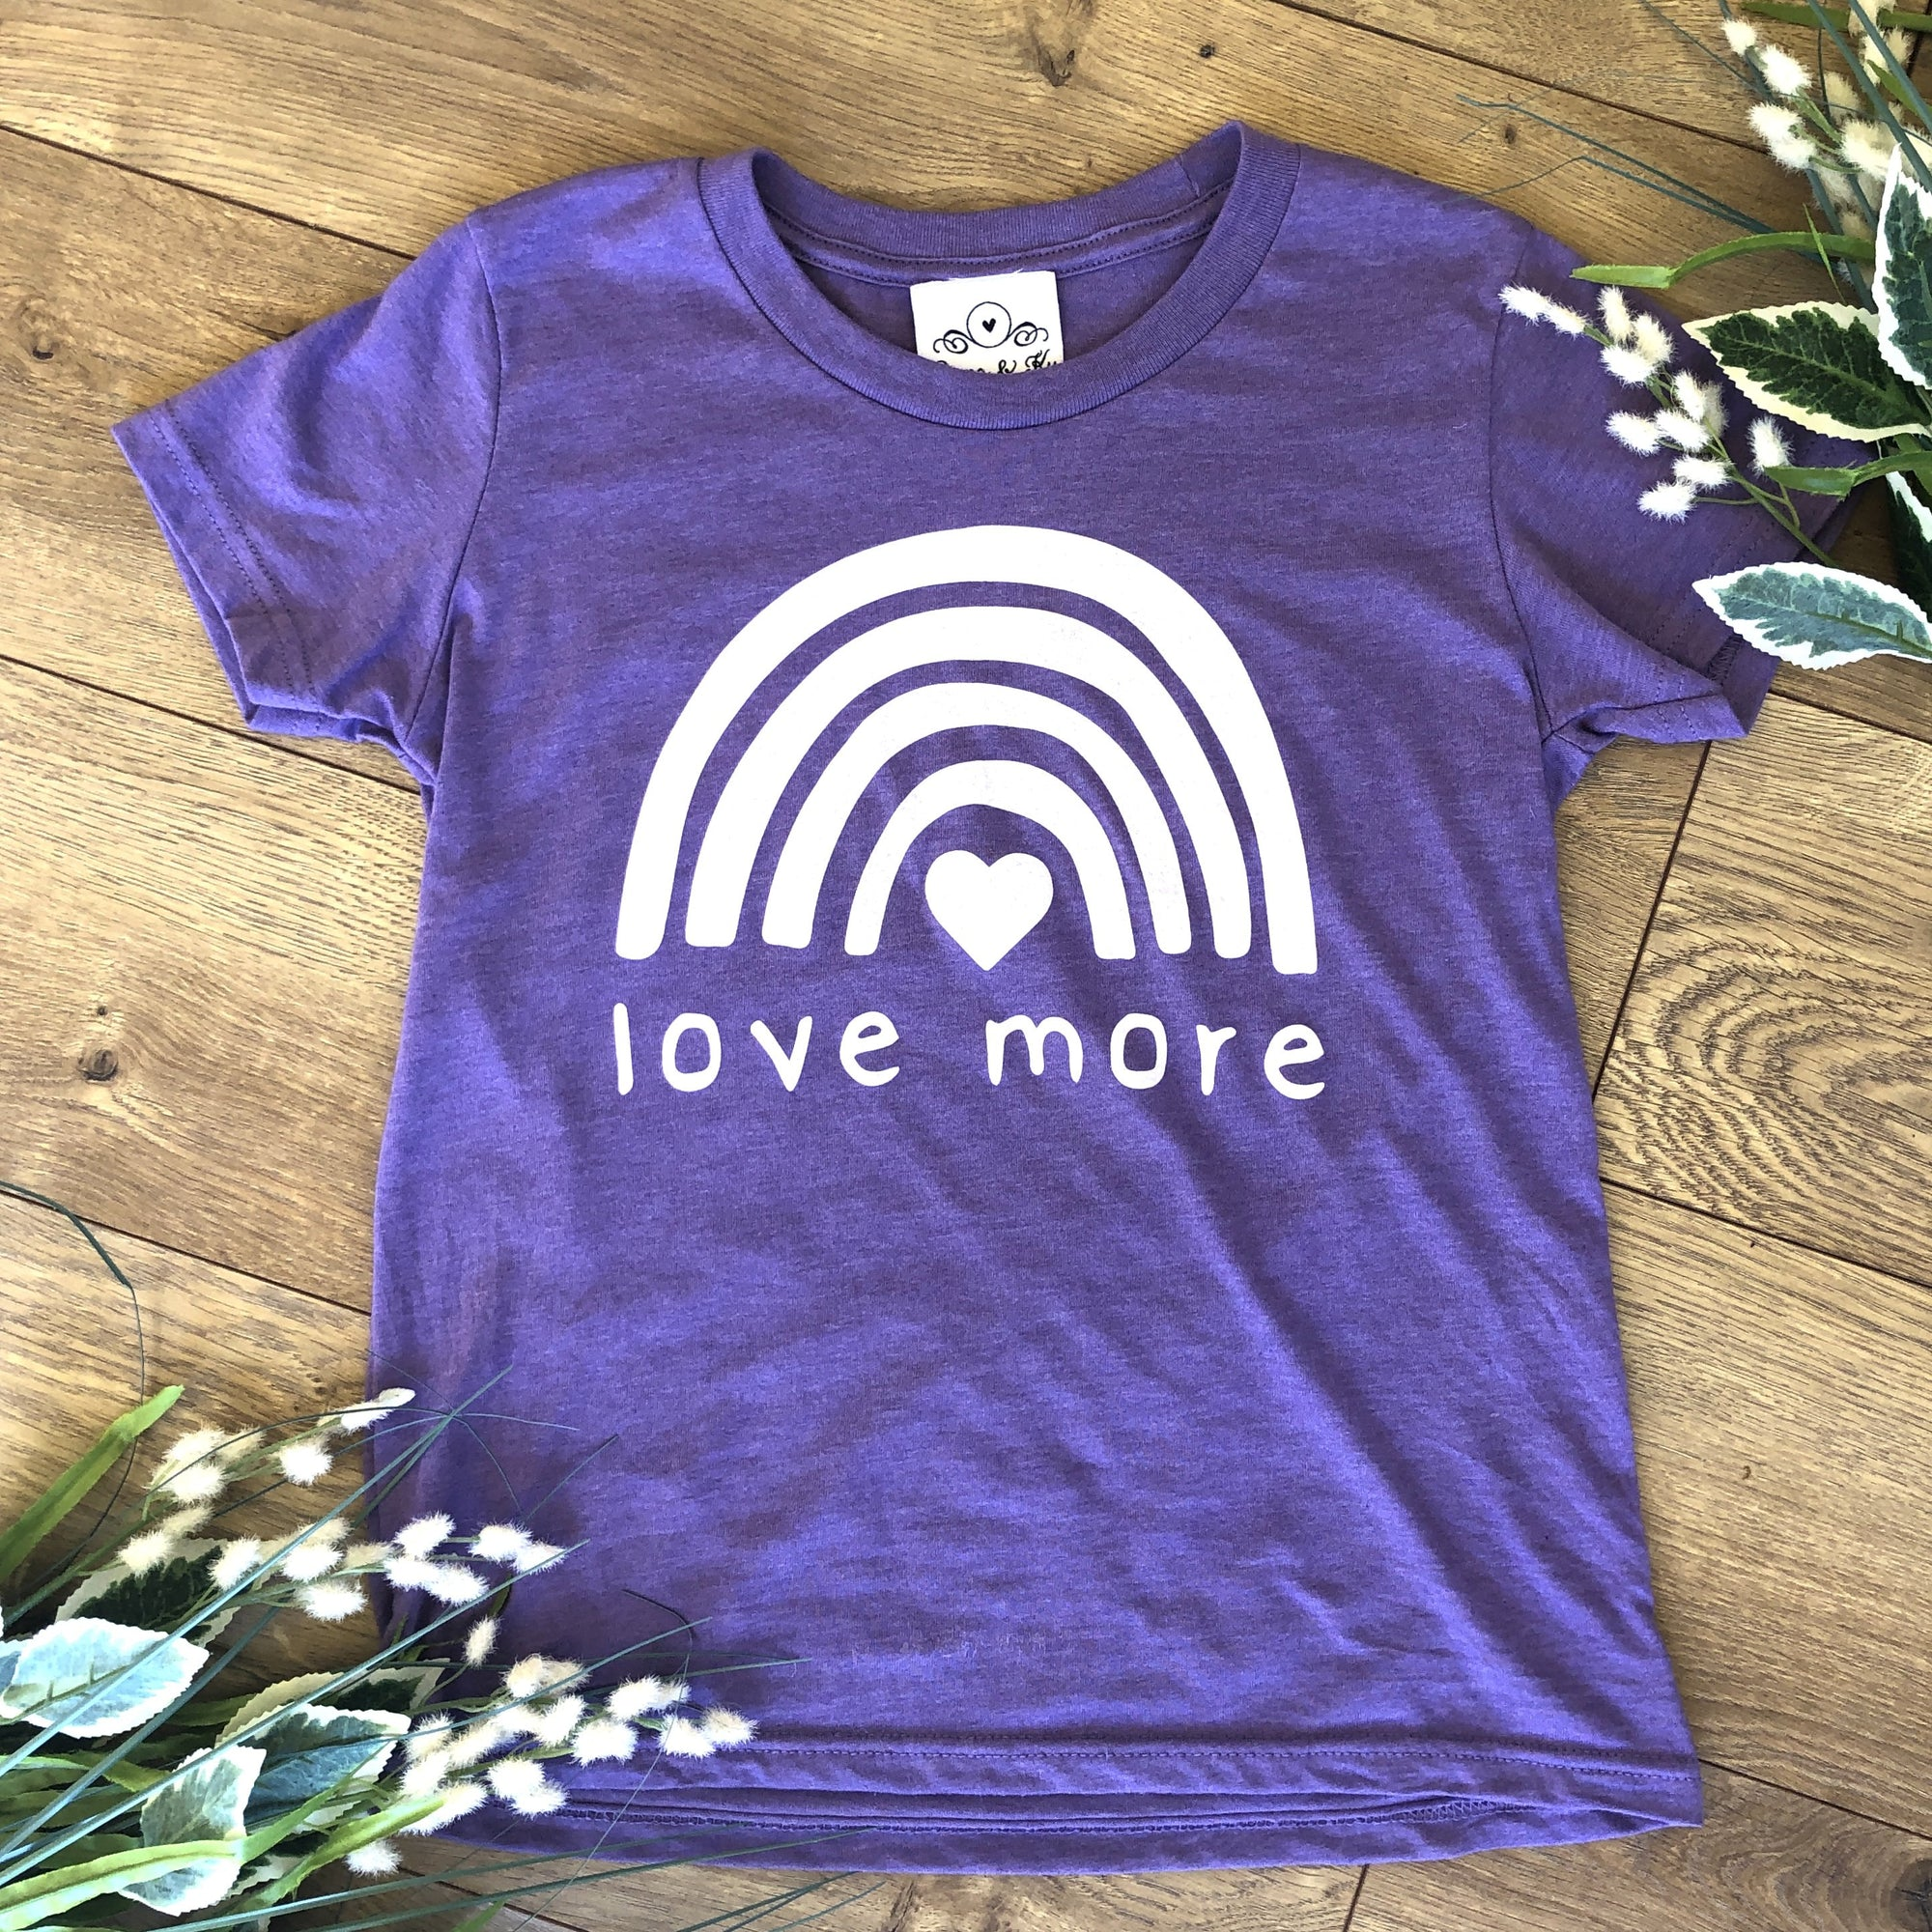 Love More Kids Purple T-Shirt - Kids T-Shirt